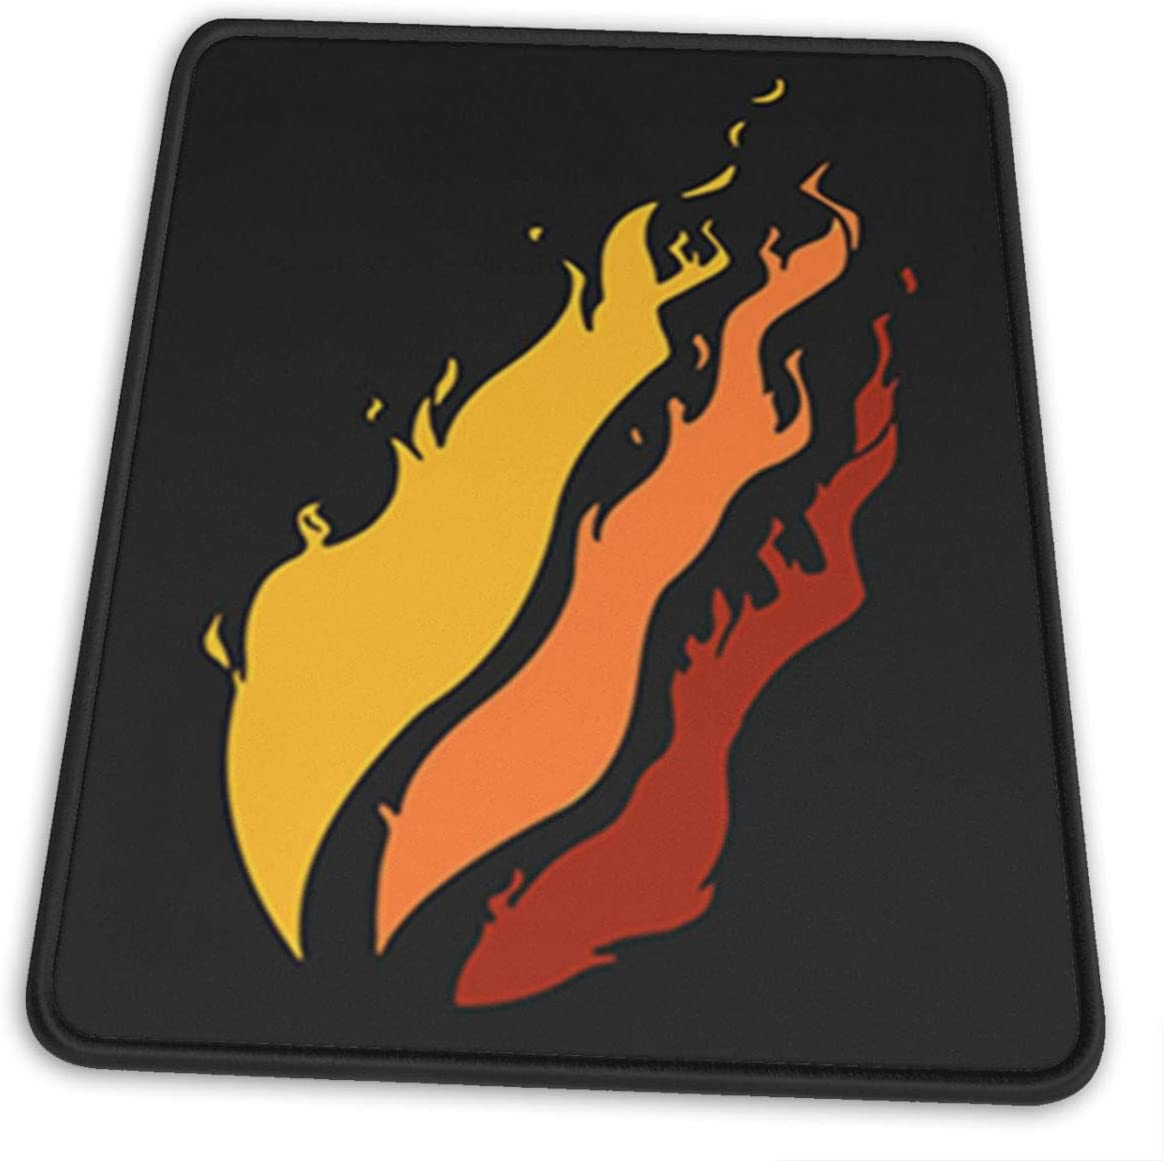 Prest-on Playz Fire NAT-ion Full-Frame Printed Precision Hemming Mouse Pad 10 X 12 Inch